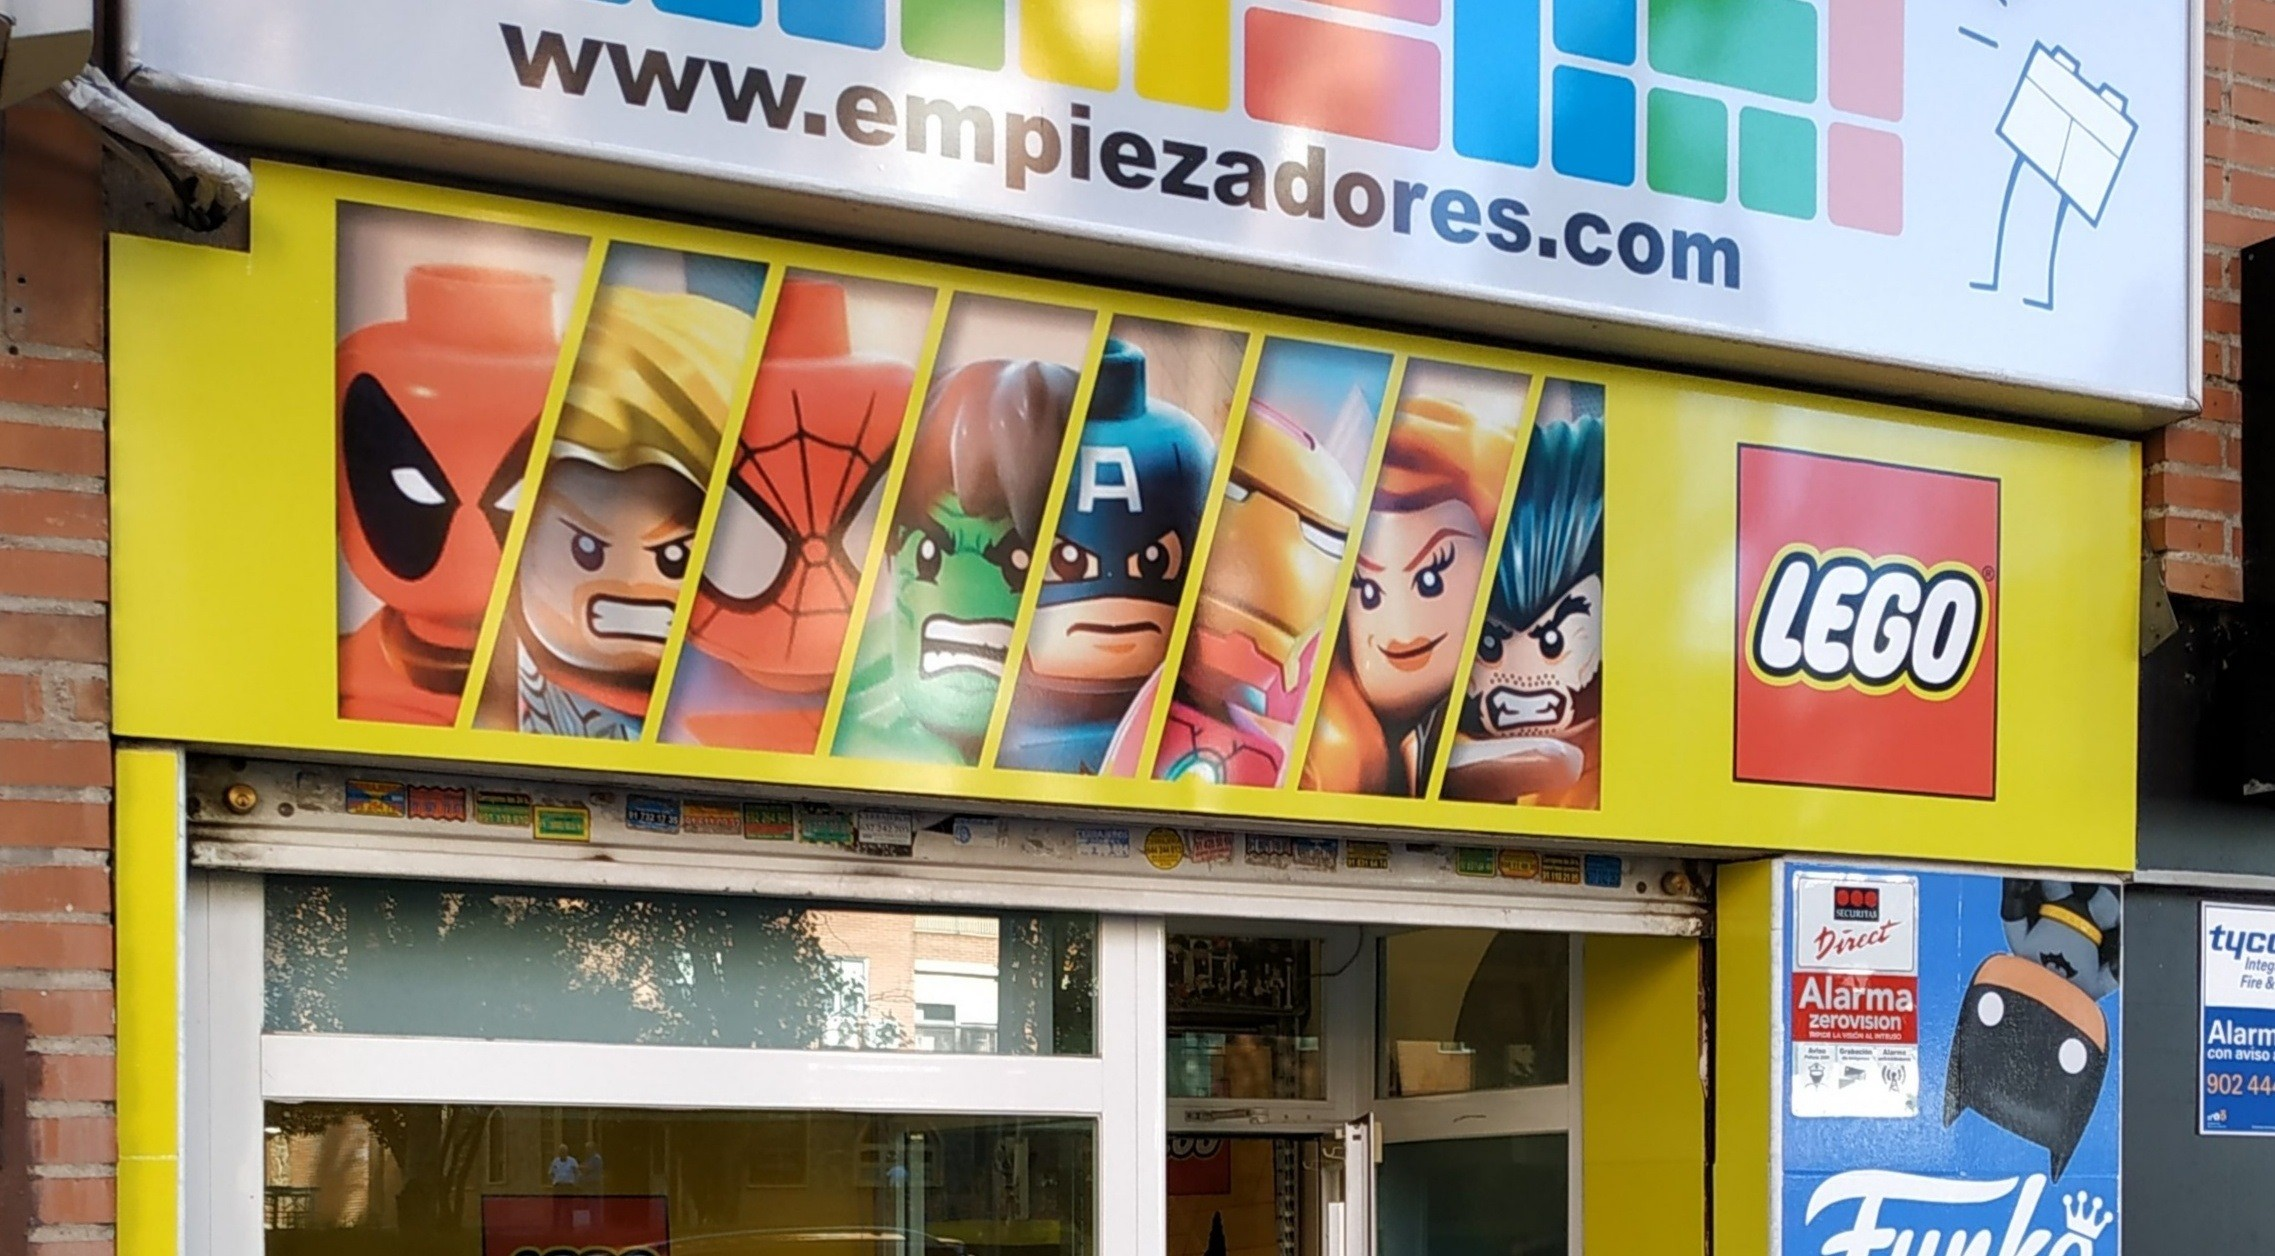 escaparate de empiezadores